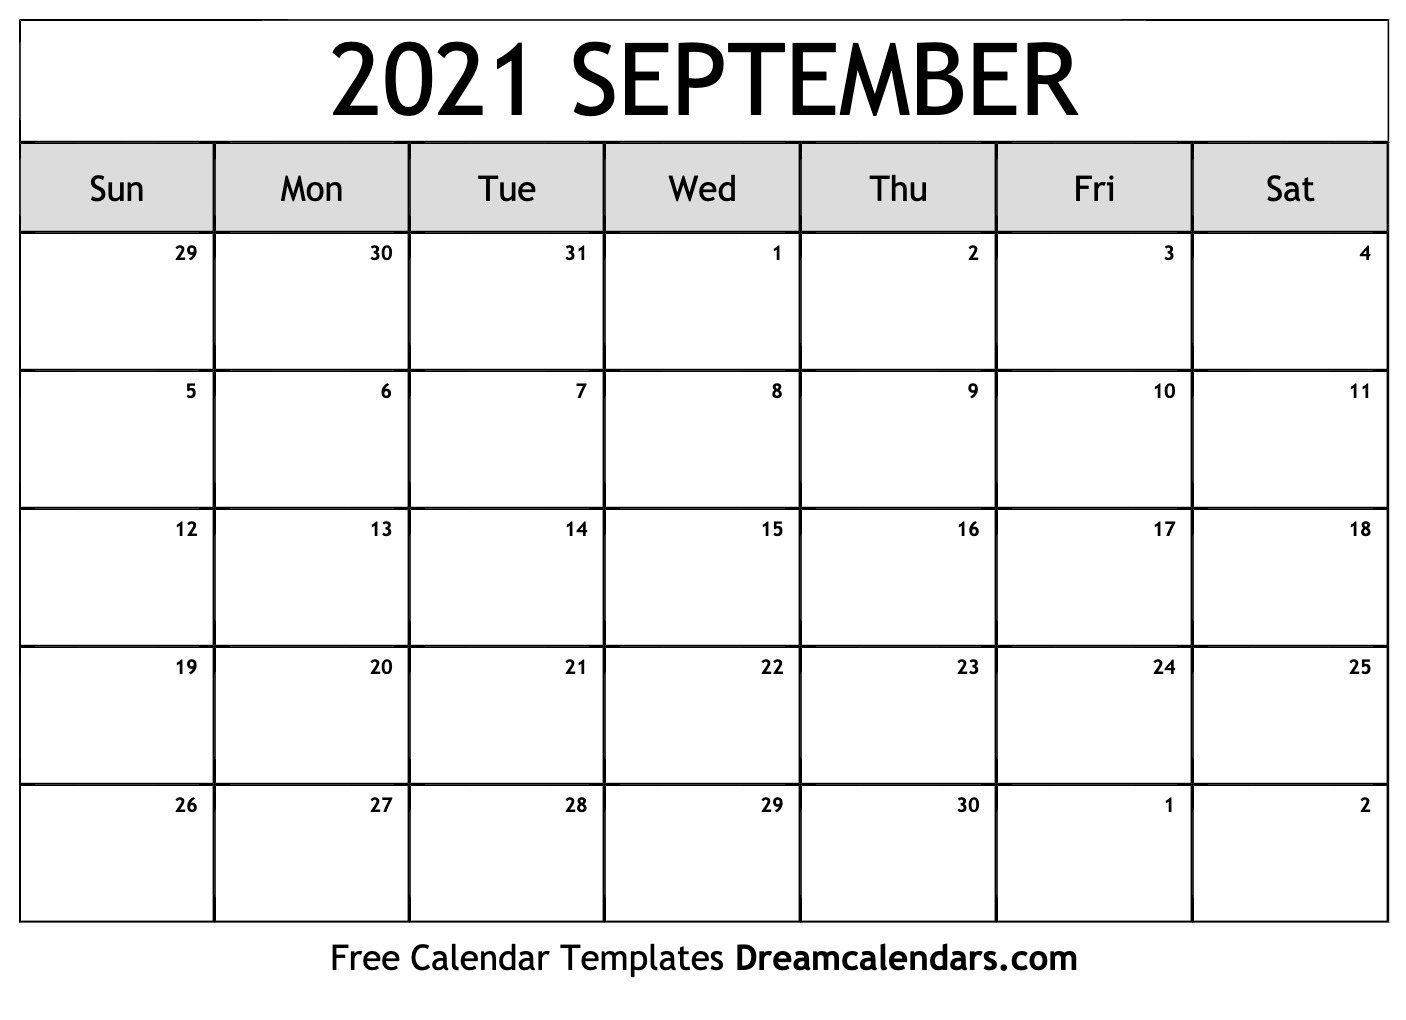 Images of Calendar 2021 Sept